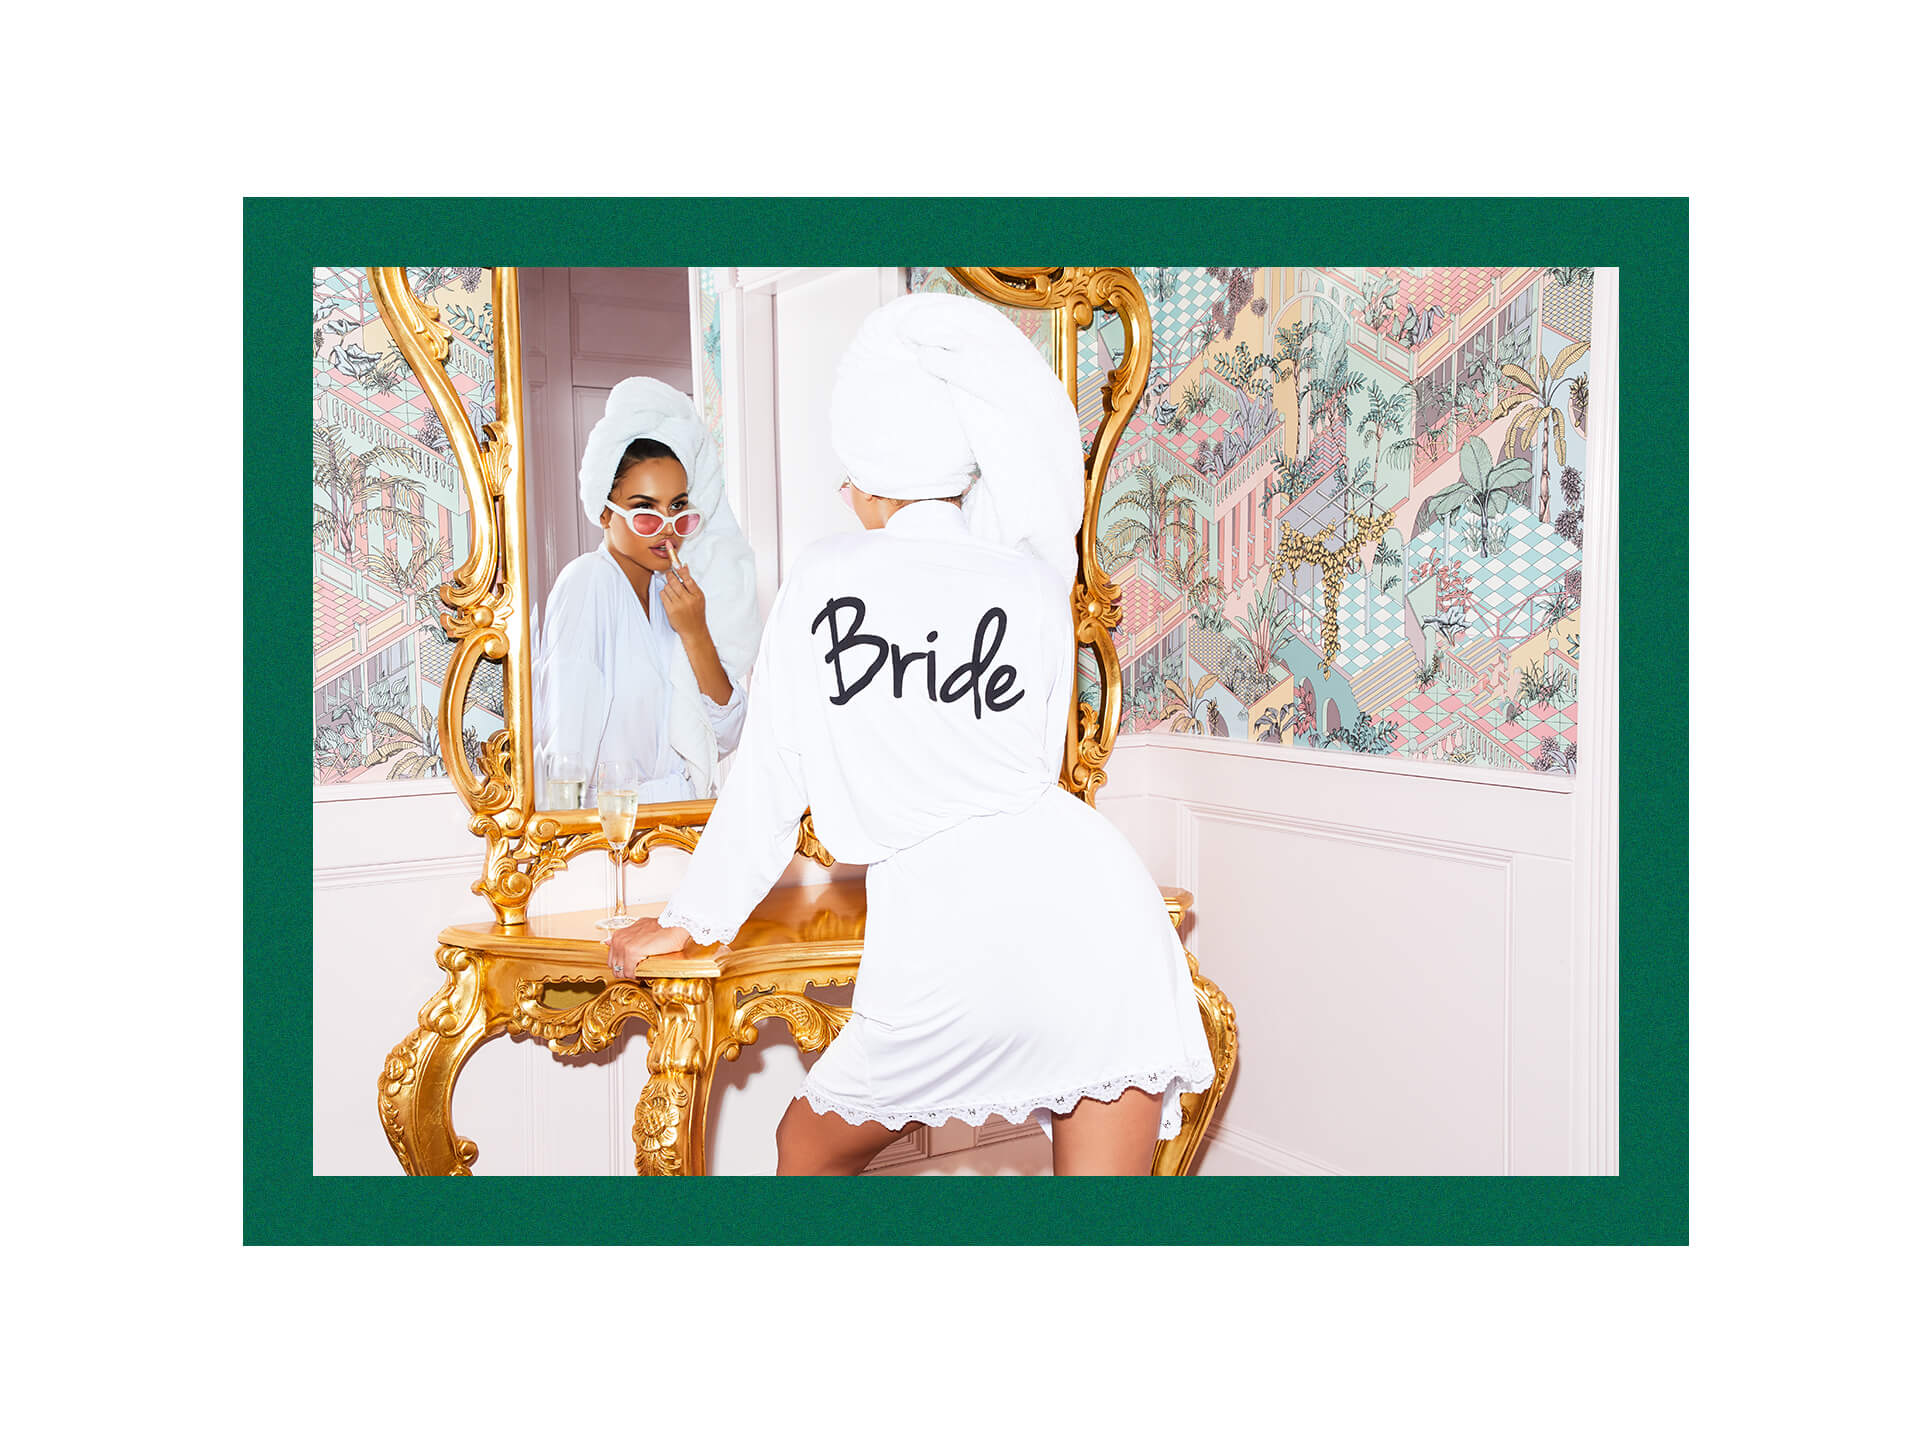 Bride Robe and Sunglasses Lookbook Image